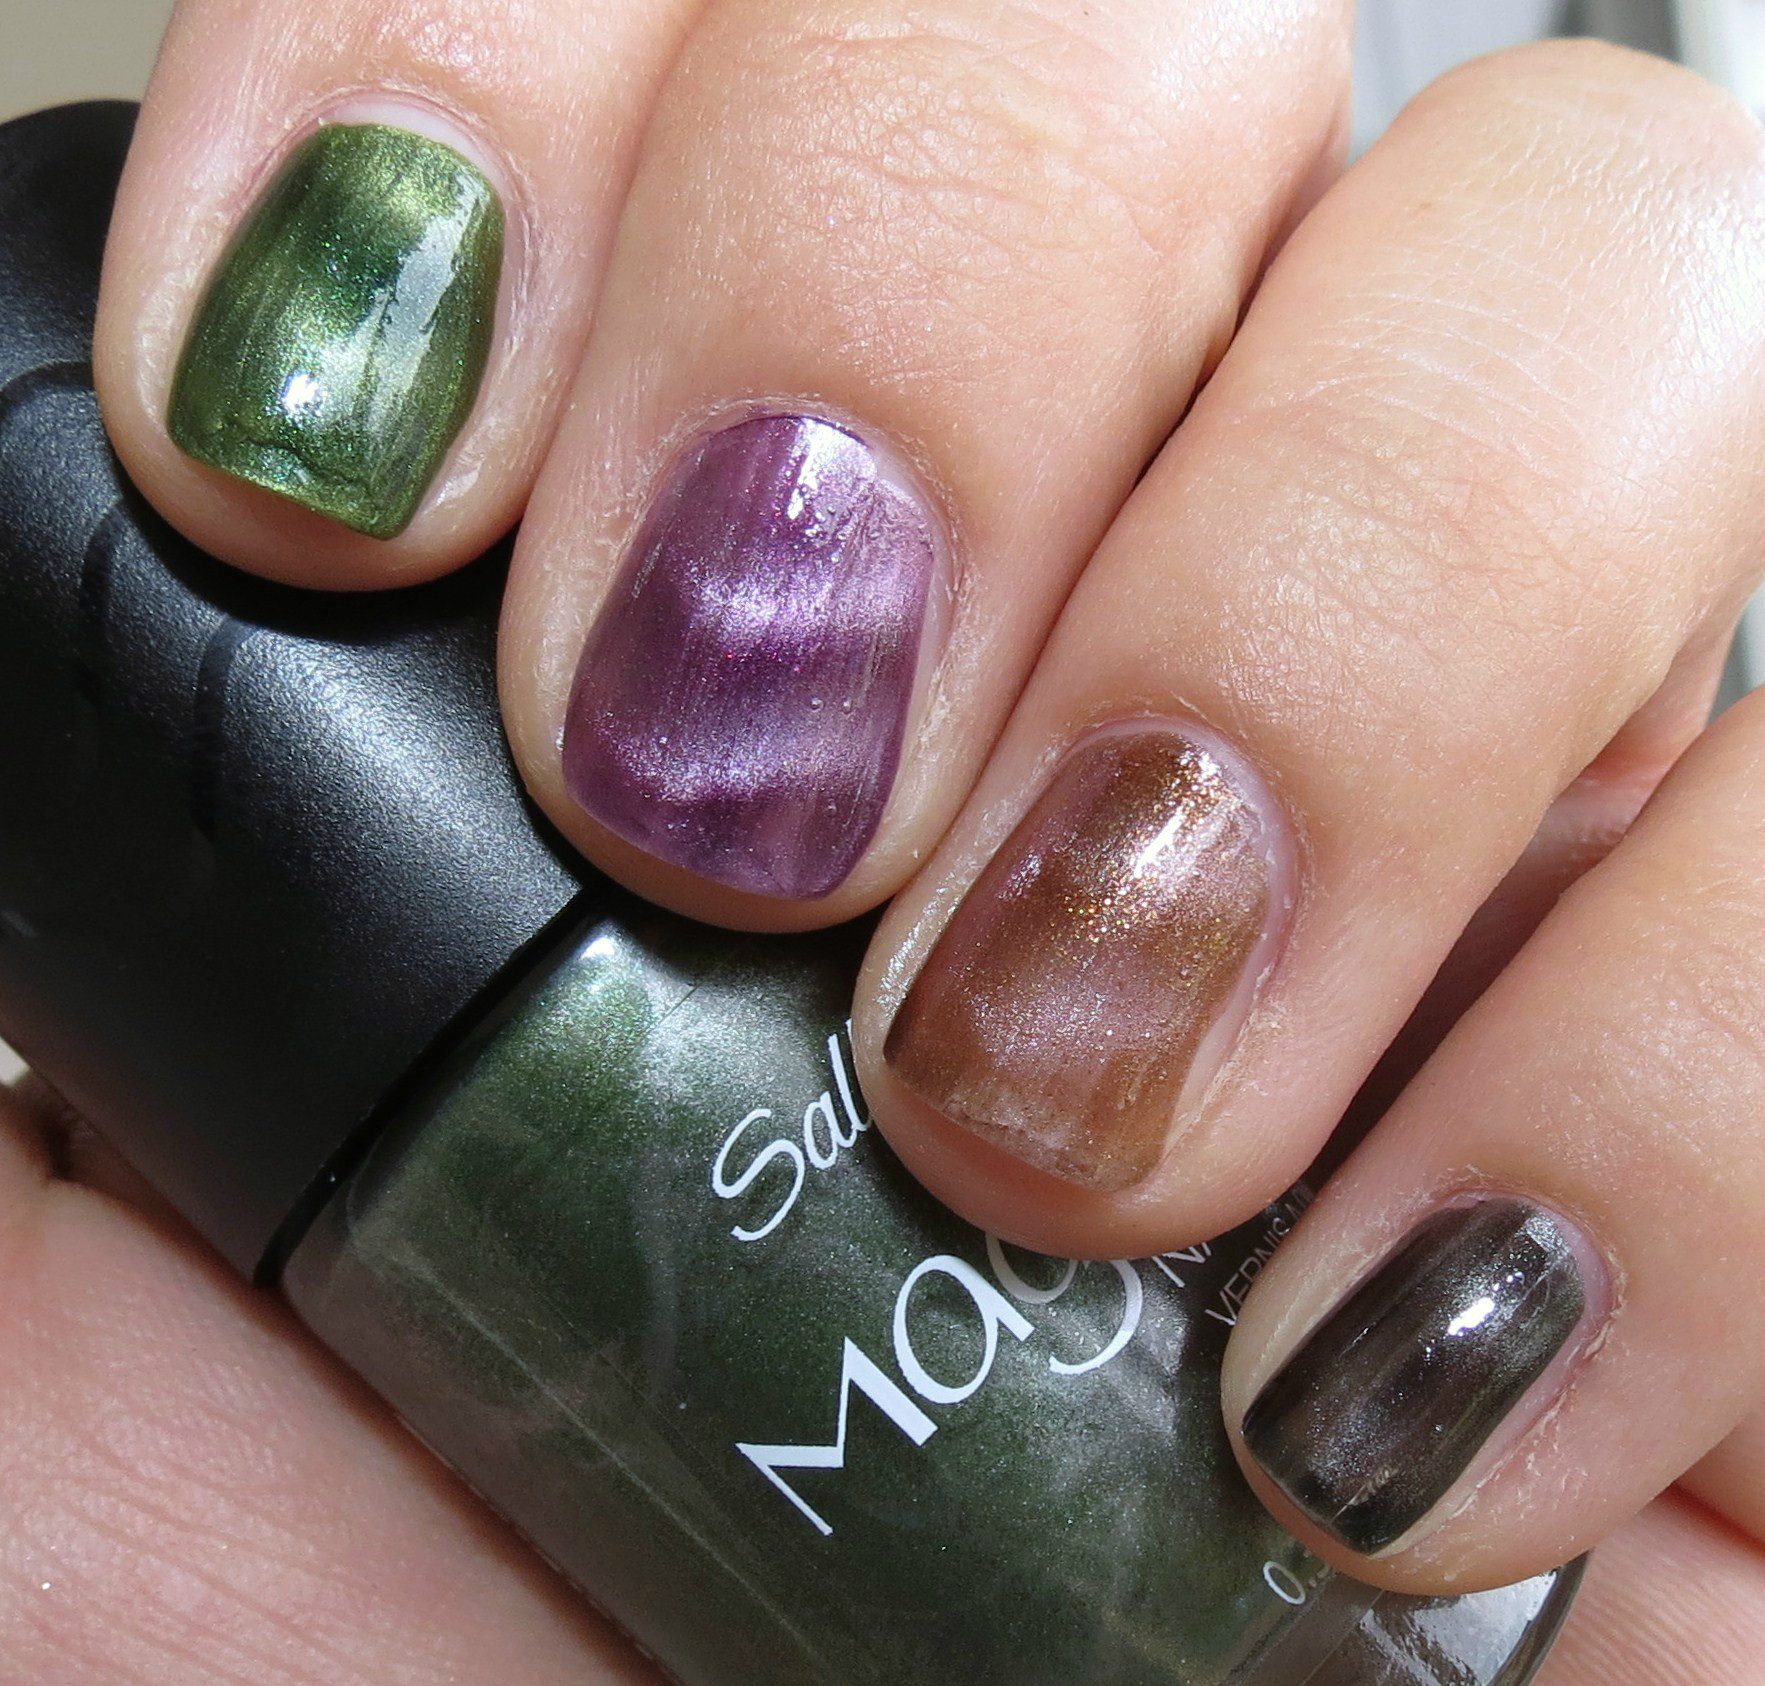 Sally Hansen Magnetic Nail Color Swatches and Review - Blushing Noir